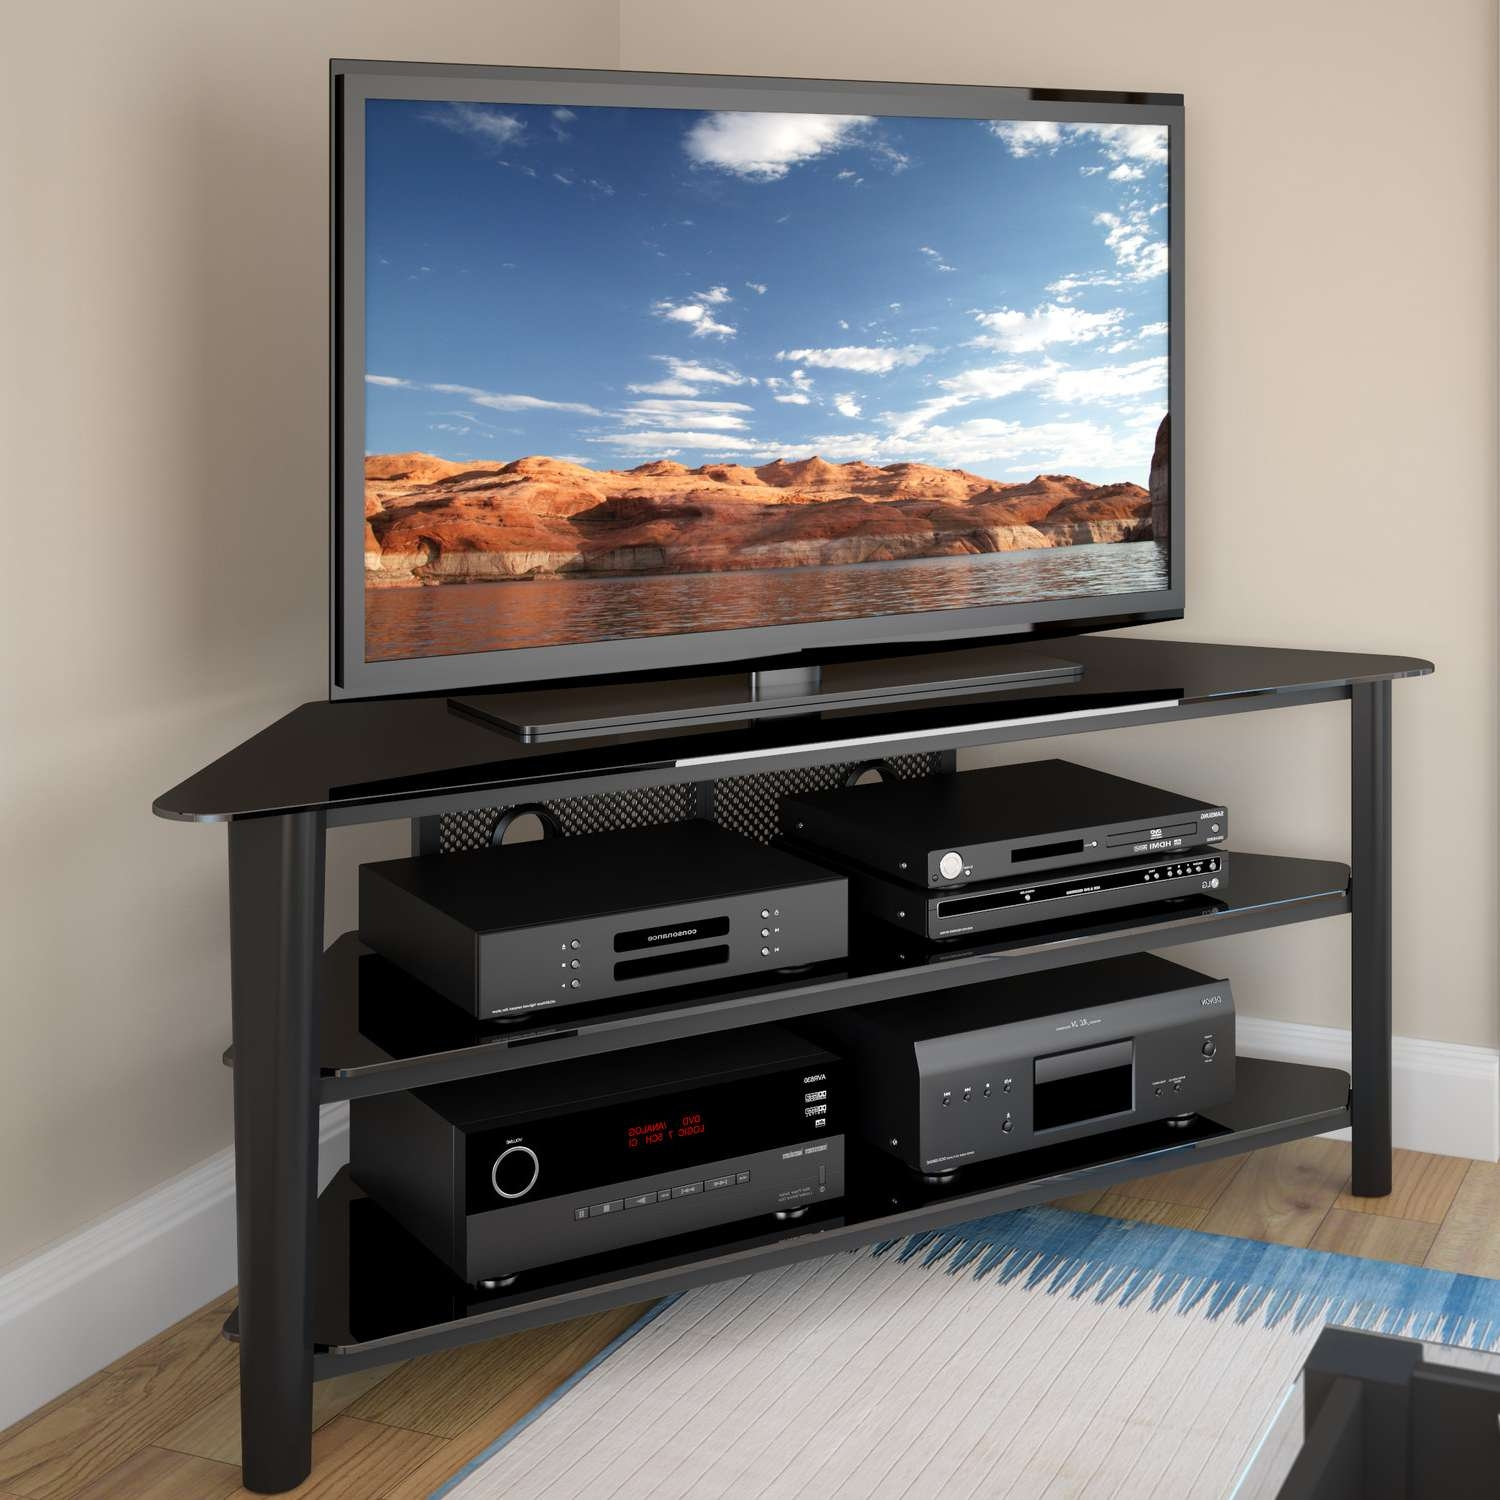 Tv Stand : 40 Fearsome 65 Inch Tv Corner Stand Pictures Concept Throughout Corner Tv Stands 40 Inch (View 10 of 20)